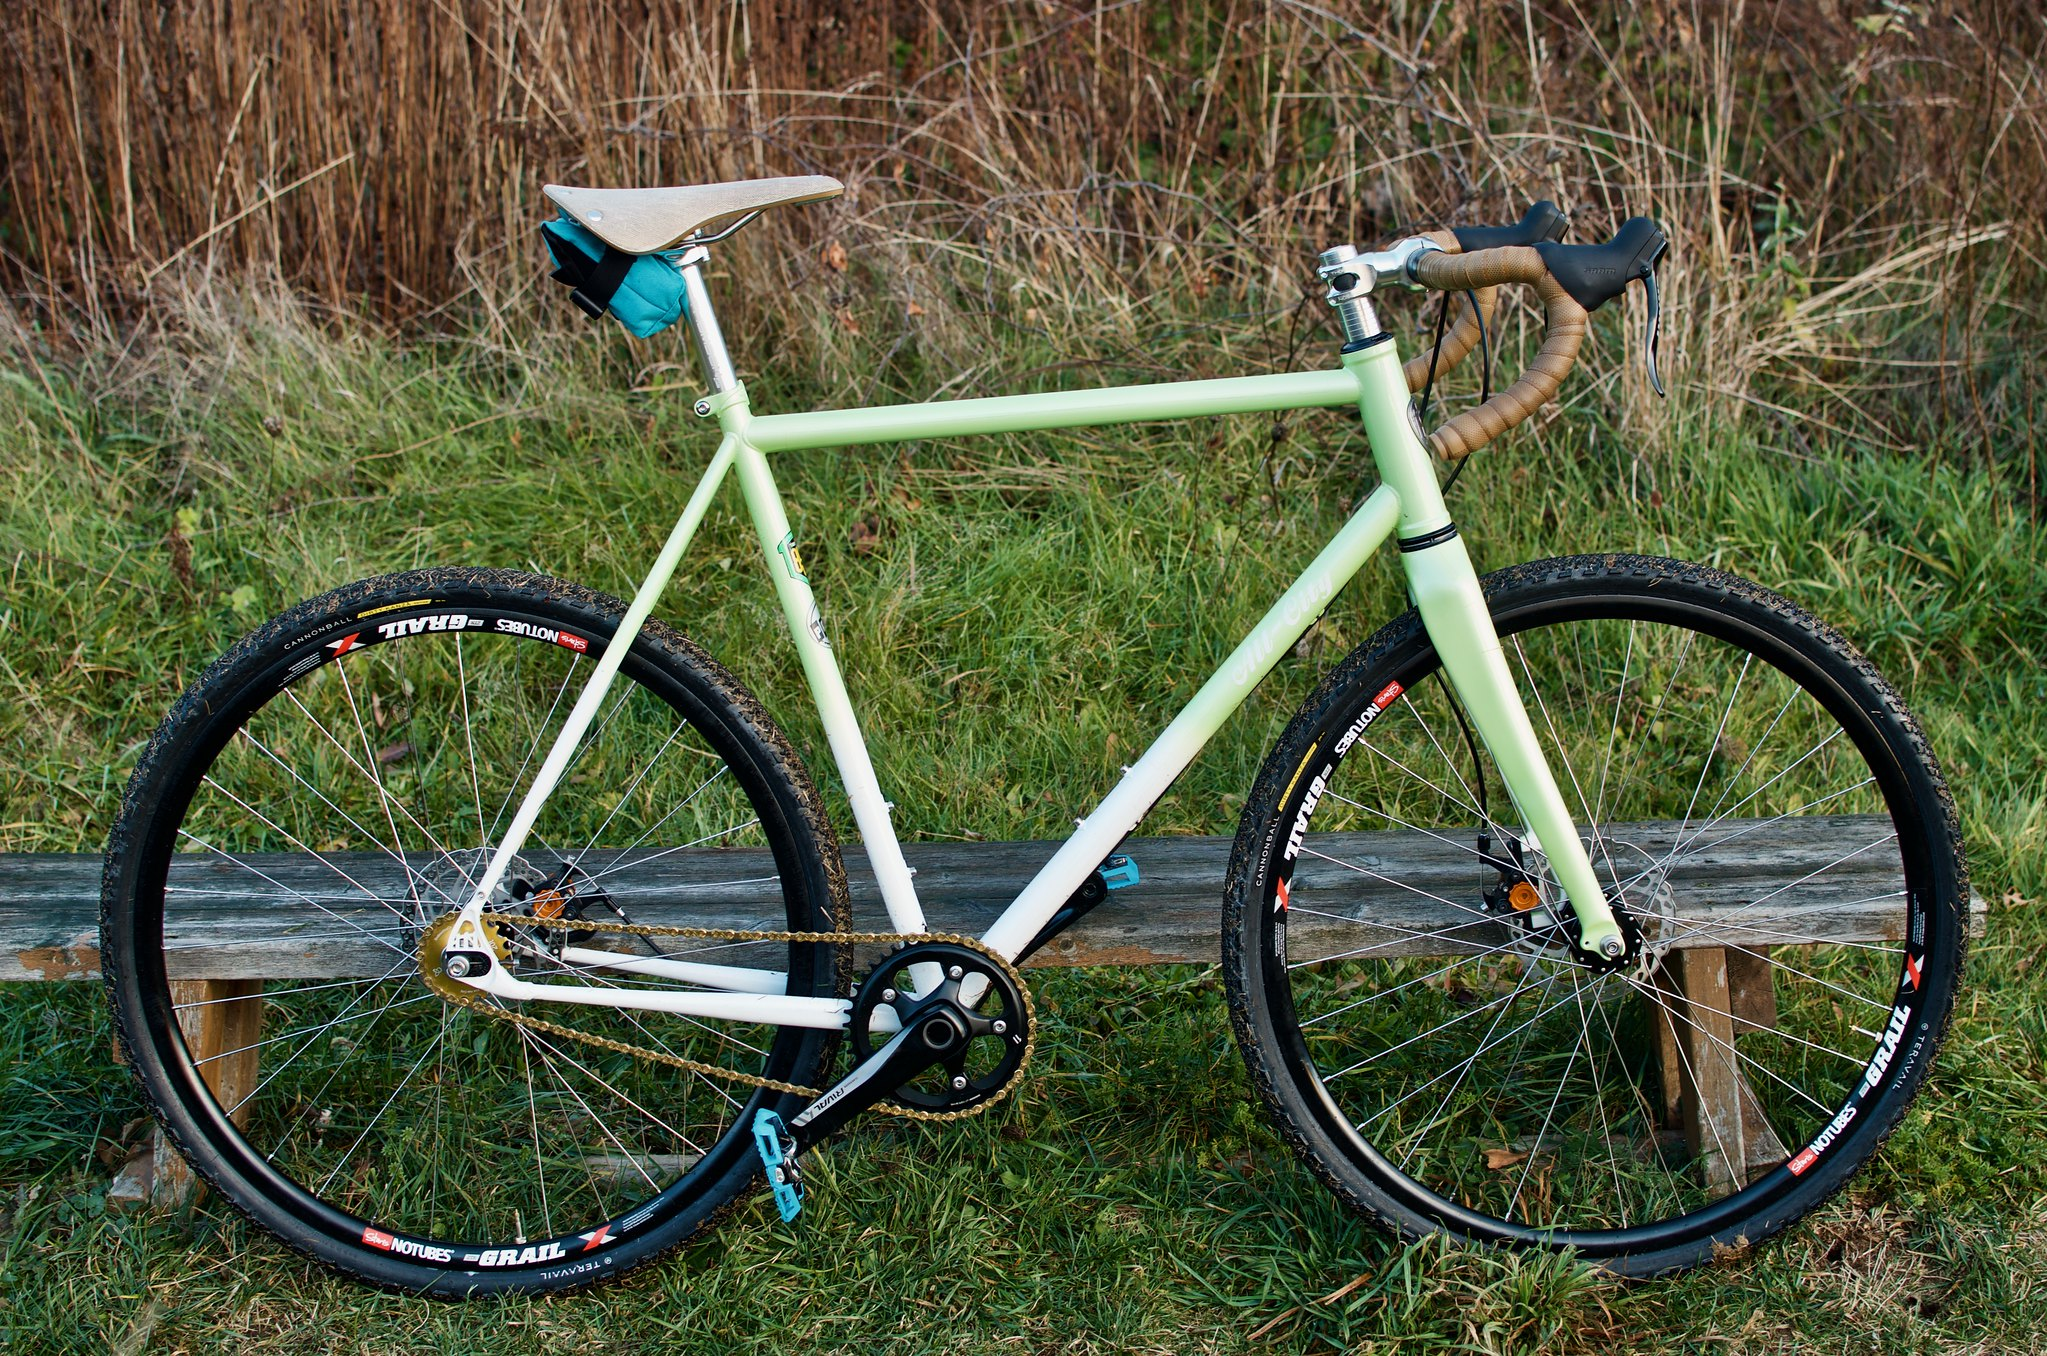 New Bike Day: All-City Nature Boy 853 – Max, The Cyclist